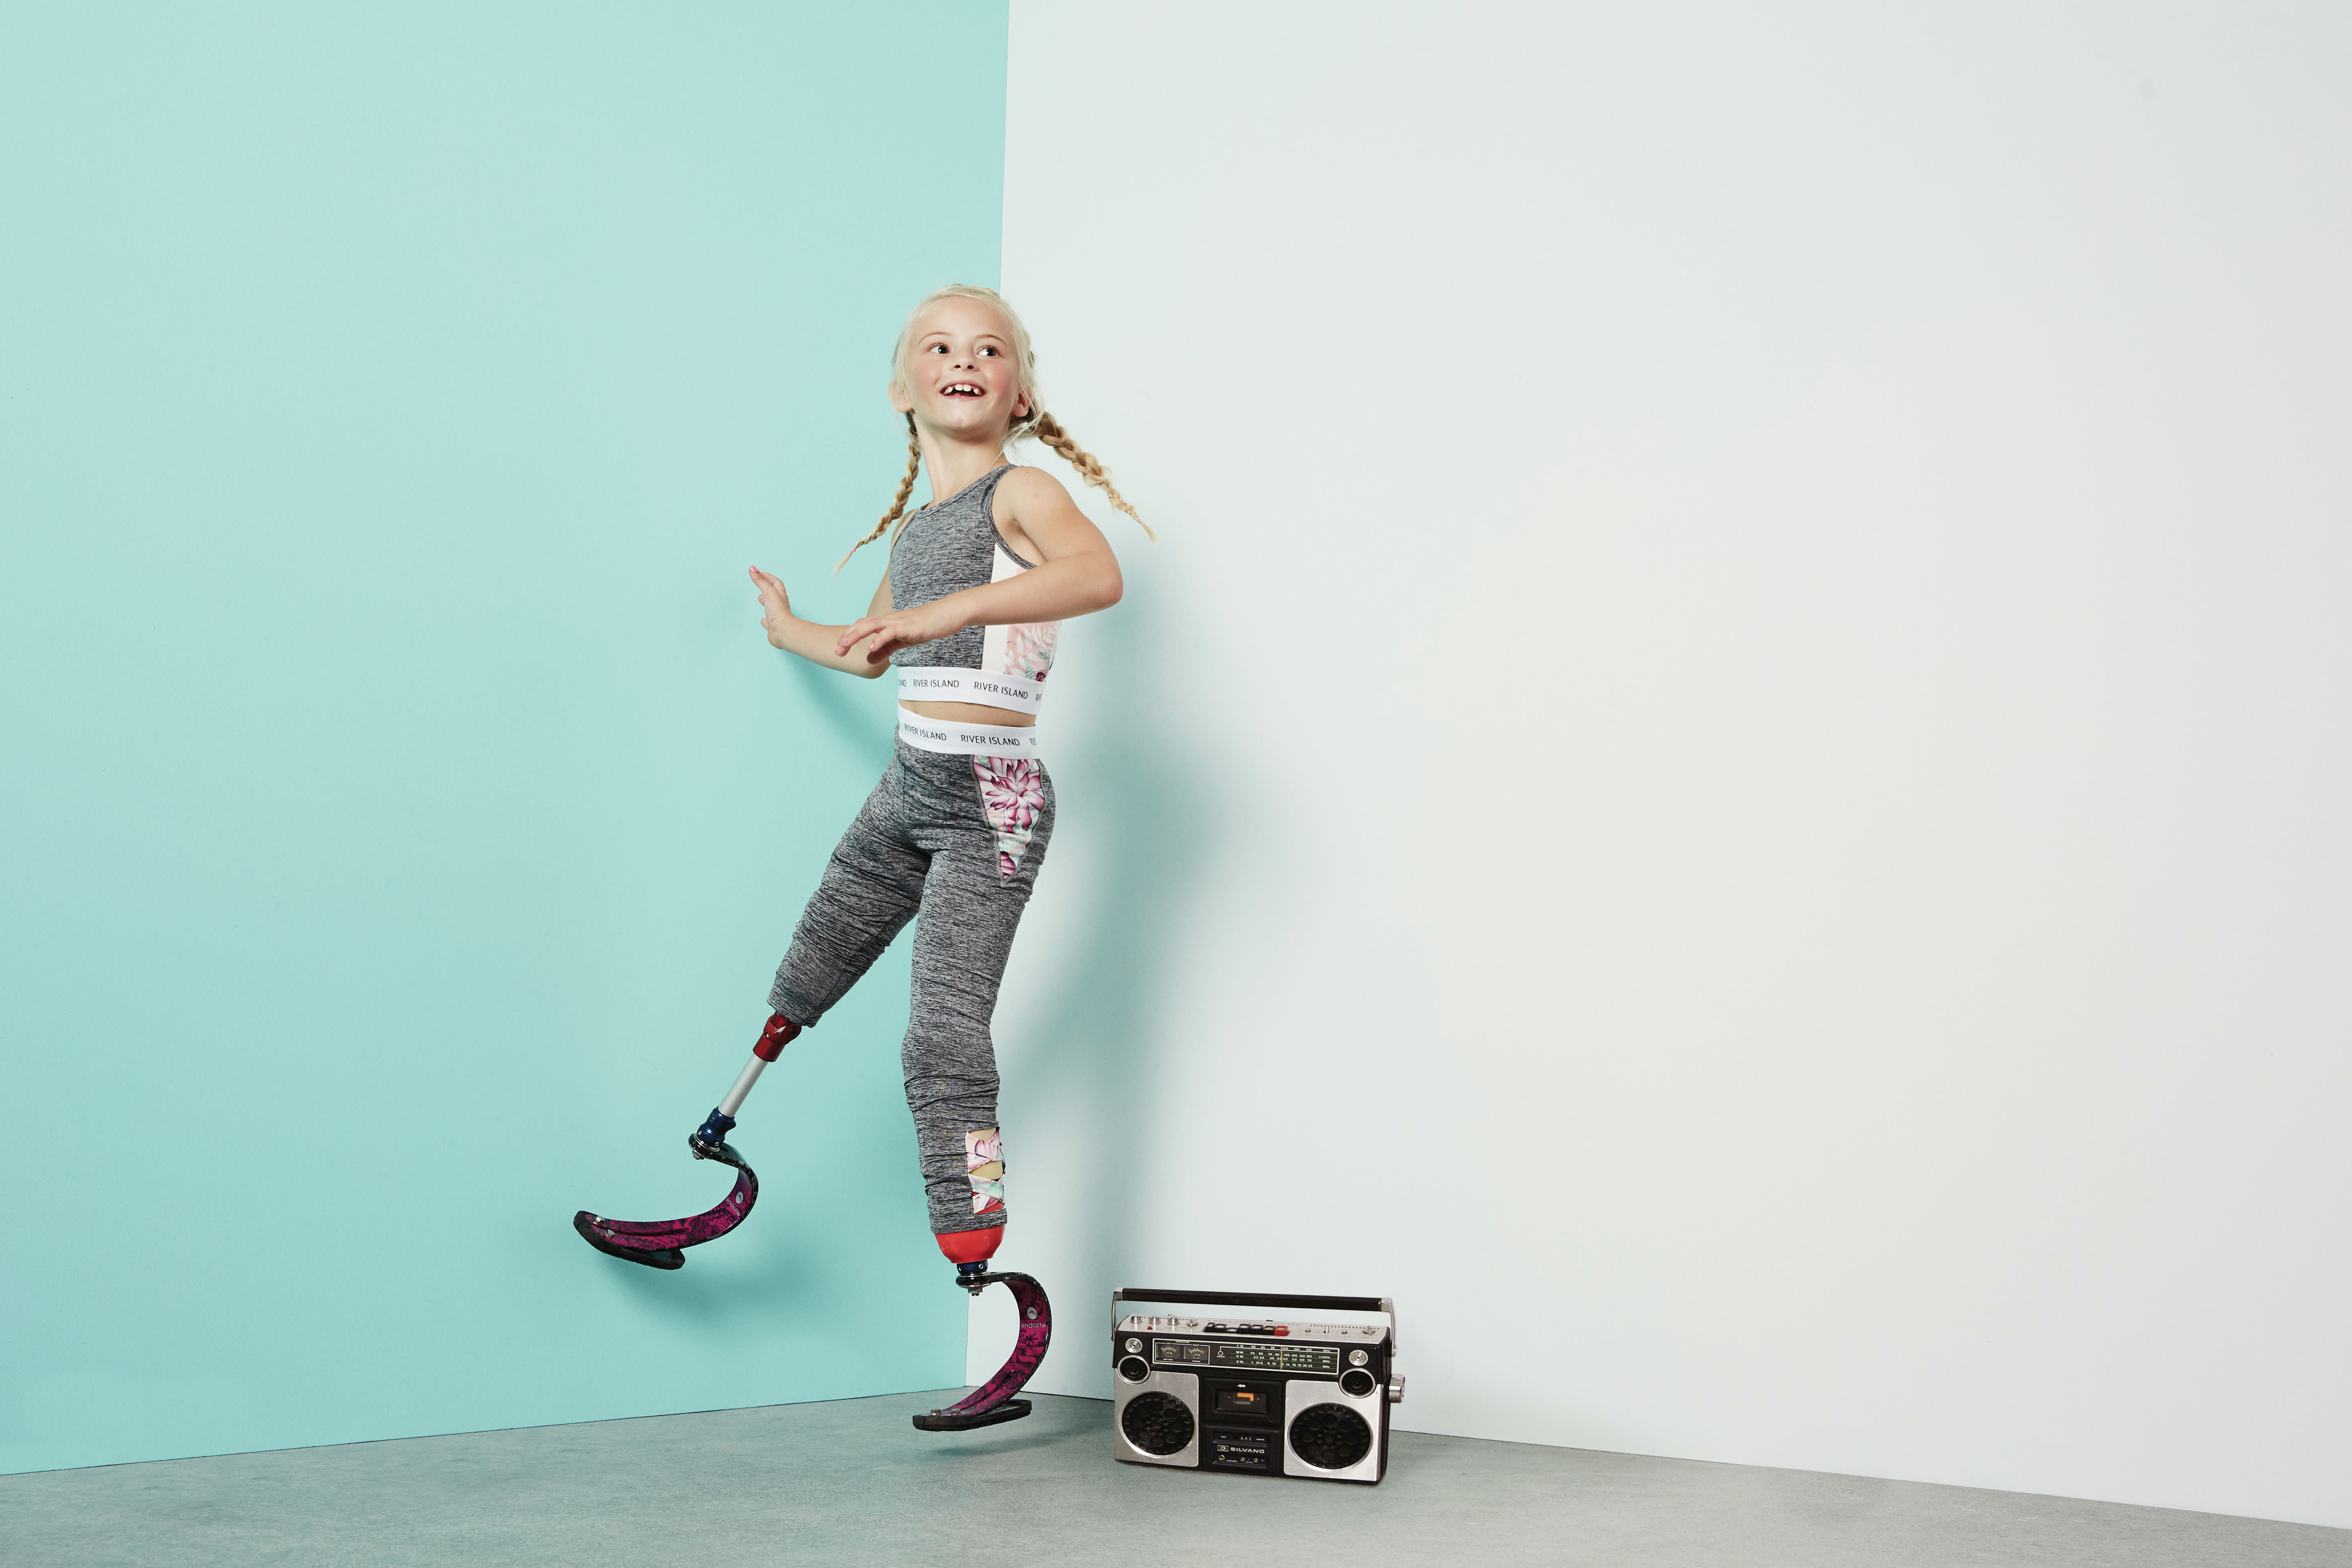 Brand taps 7-year-old double amputee model for fashion campaign